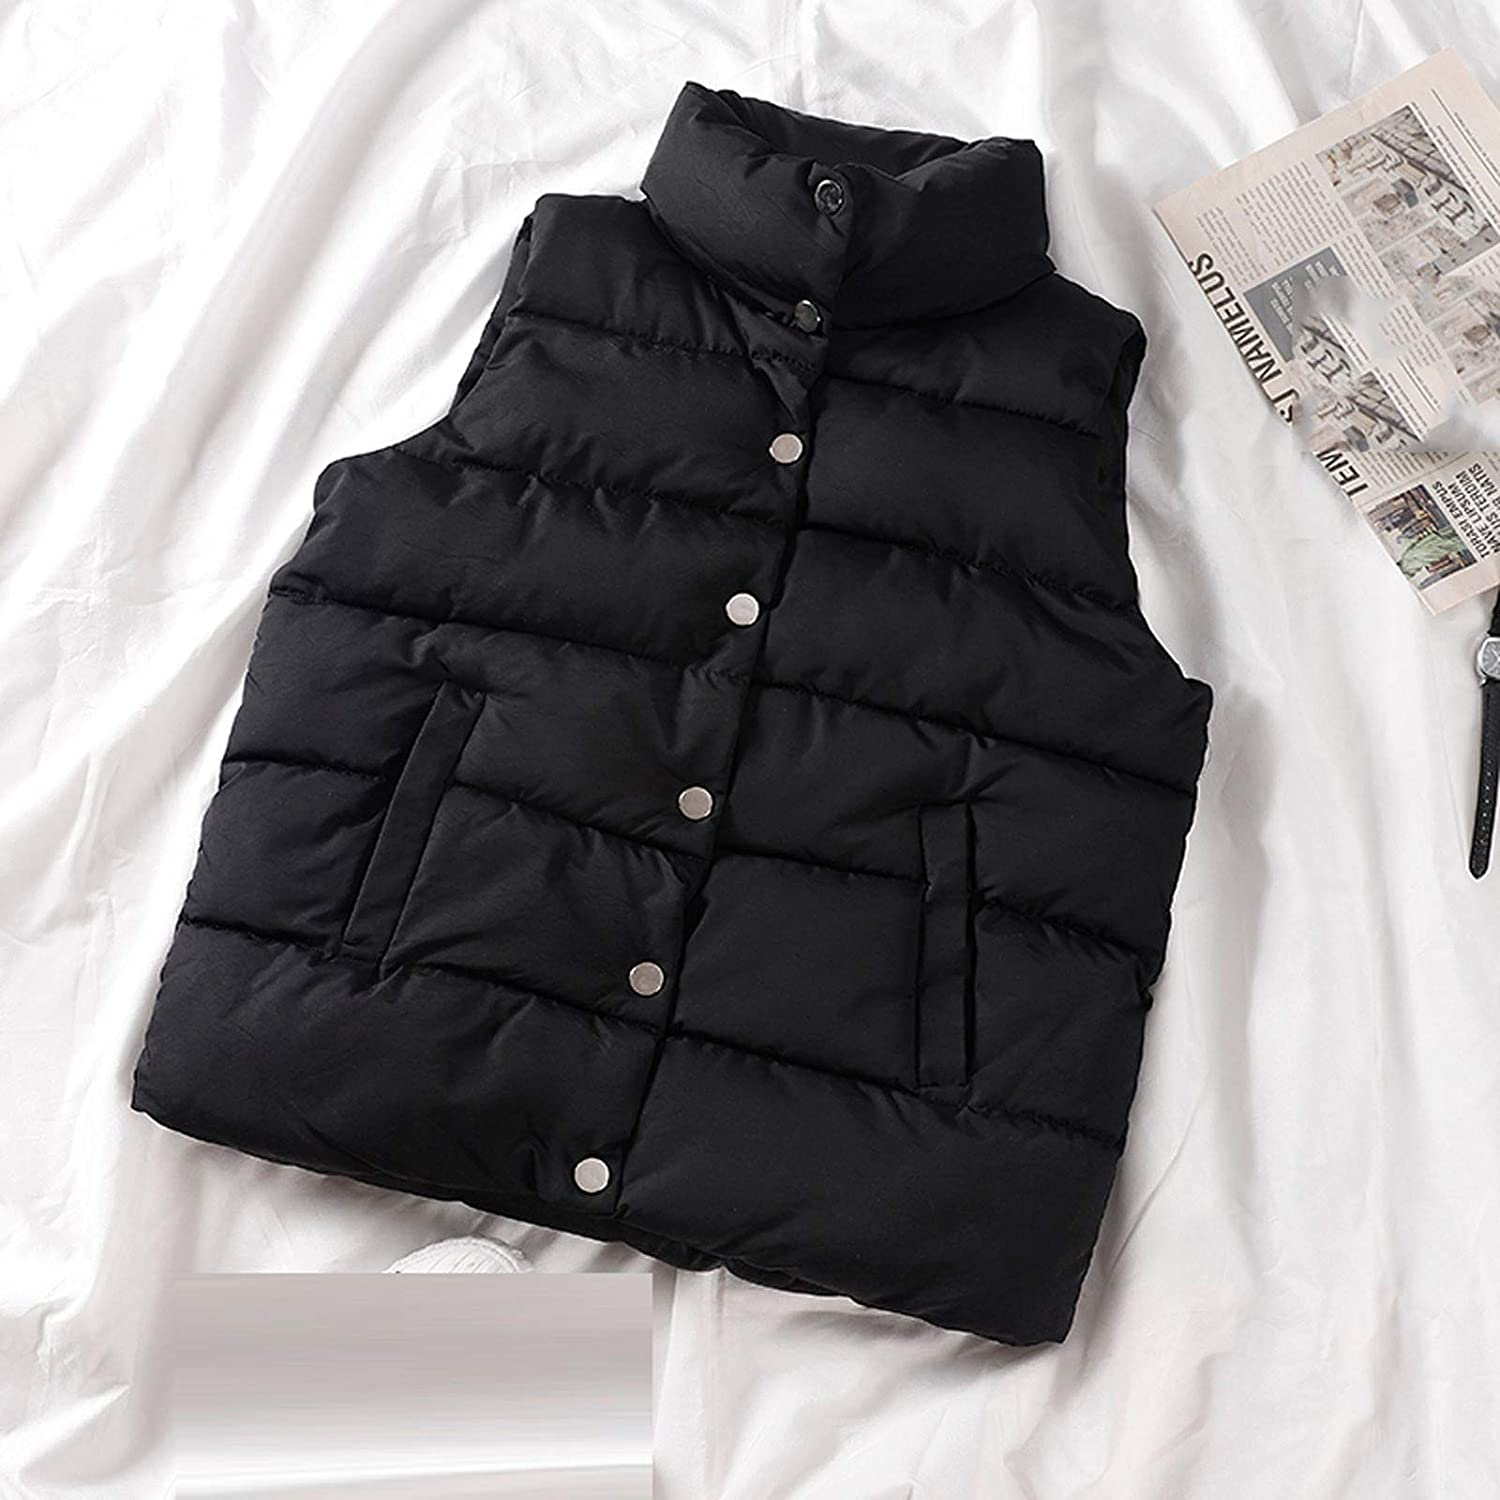 with Buttoned and Pocket Solid Color Sleeveless Puffer Vest Mikey Store Womens Lightweight Long Down Vest Full Zipper